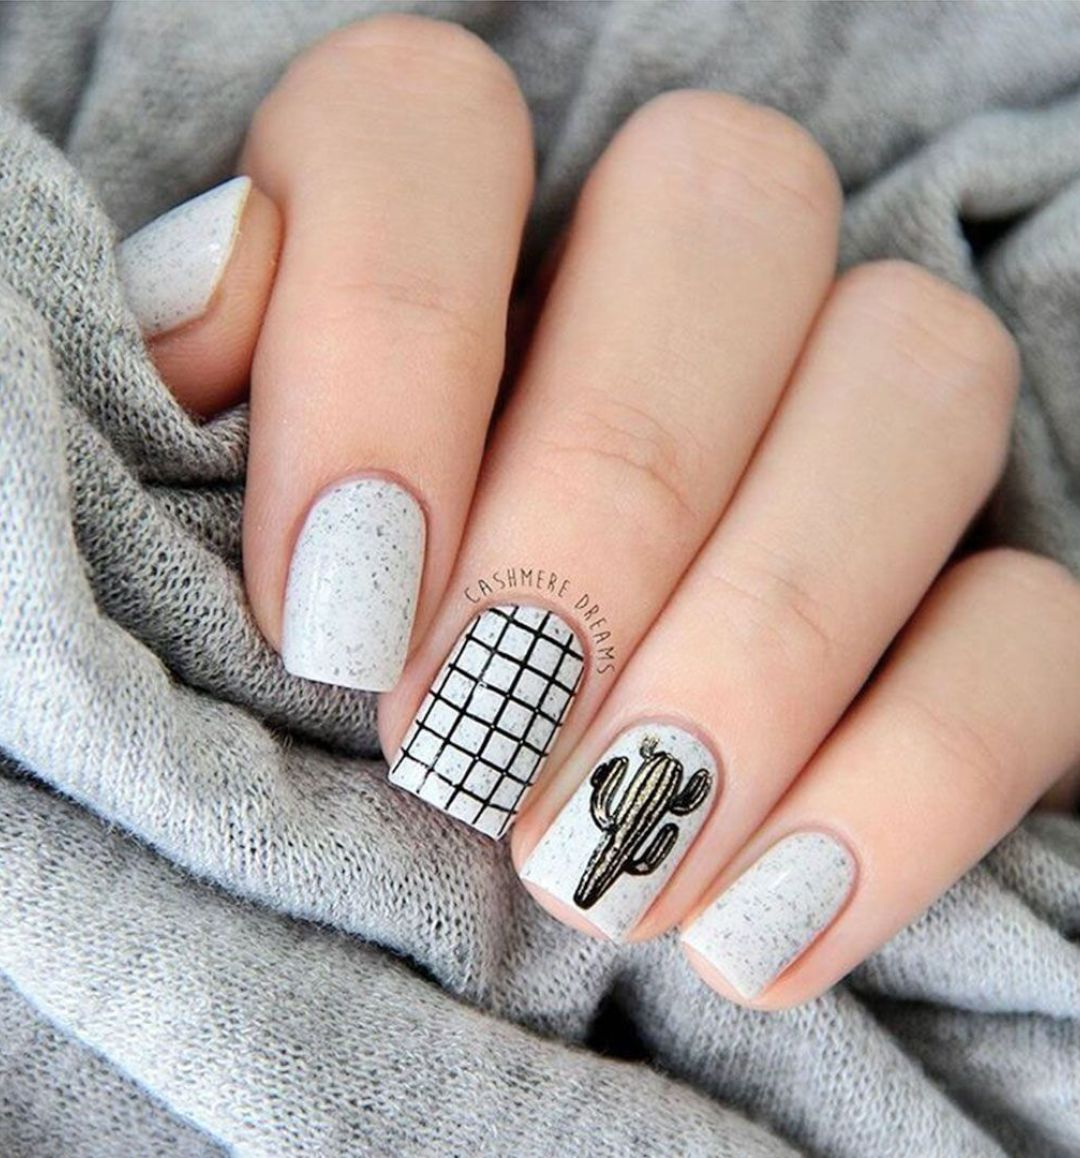 41 eye-catching mismatched nail art design ideas - nails ,matte nail ...